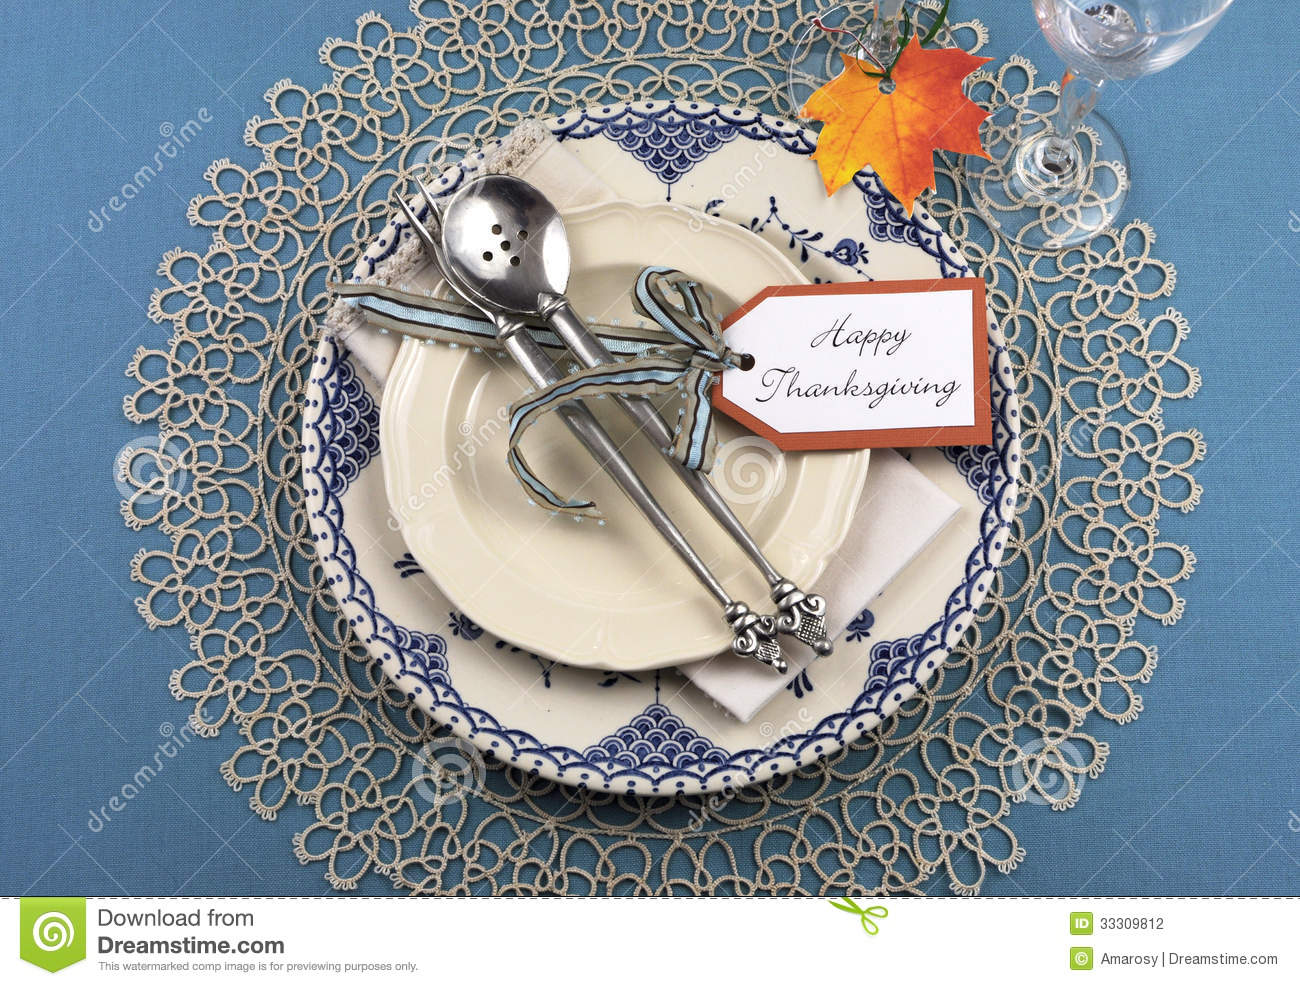 Vintage Thanksgiving Dinner Table Place Setting Stock  : vintage thanksgiving dinner table place setting beautiful shabby chic blue plate antique silverware lace doily 33309812 from www.dreamstime.com size 1300 x 986 jpeg 283kB